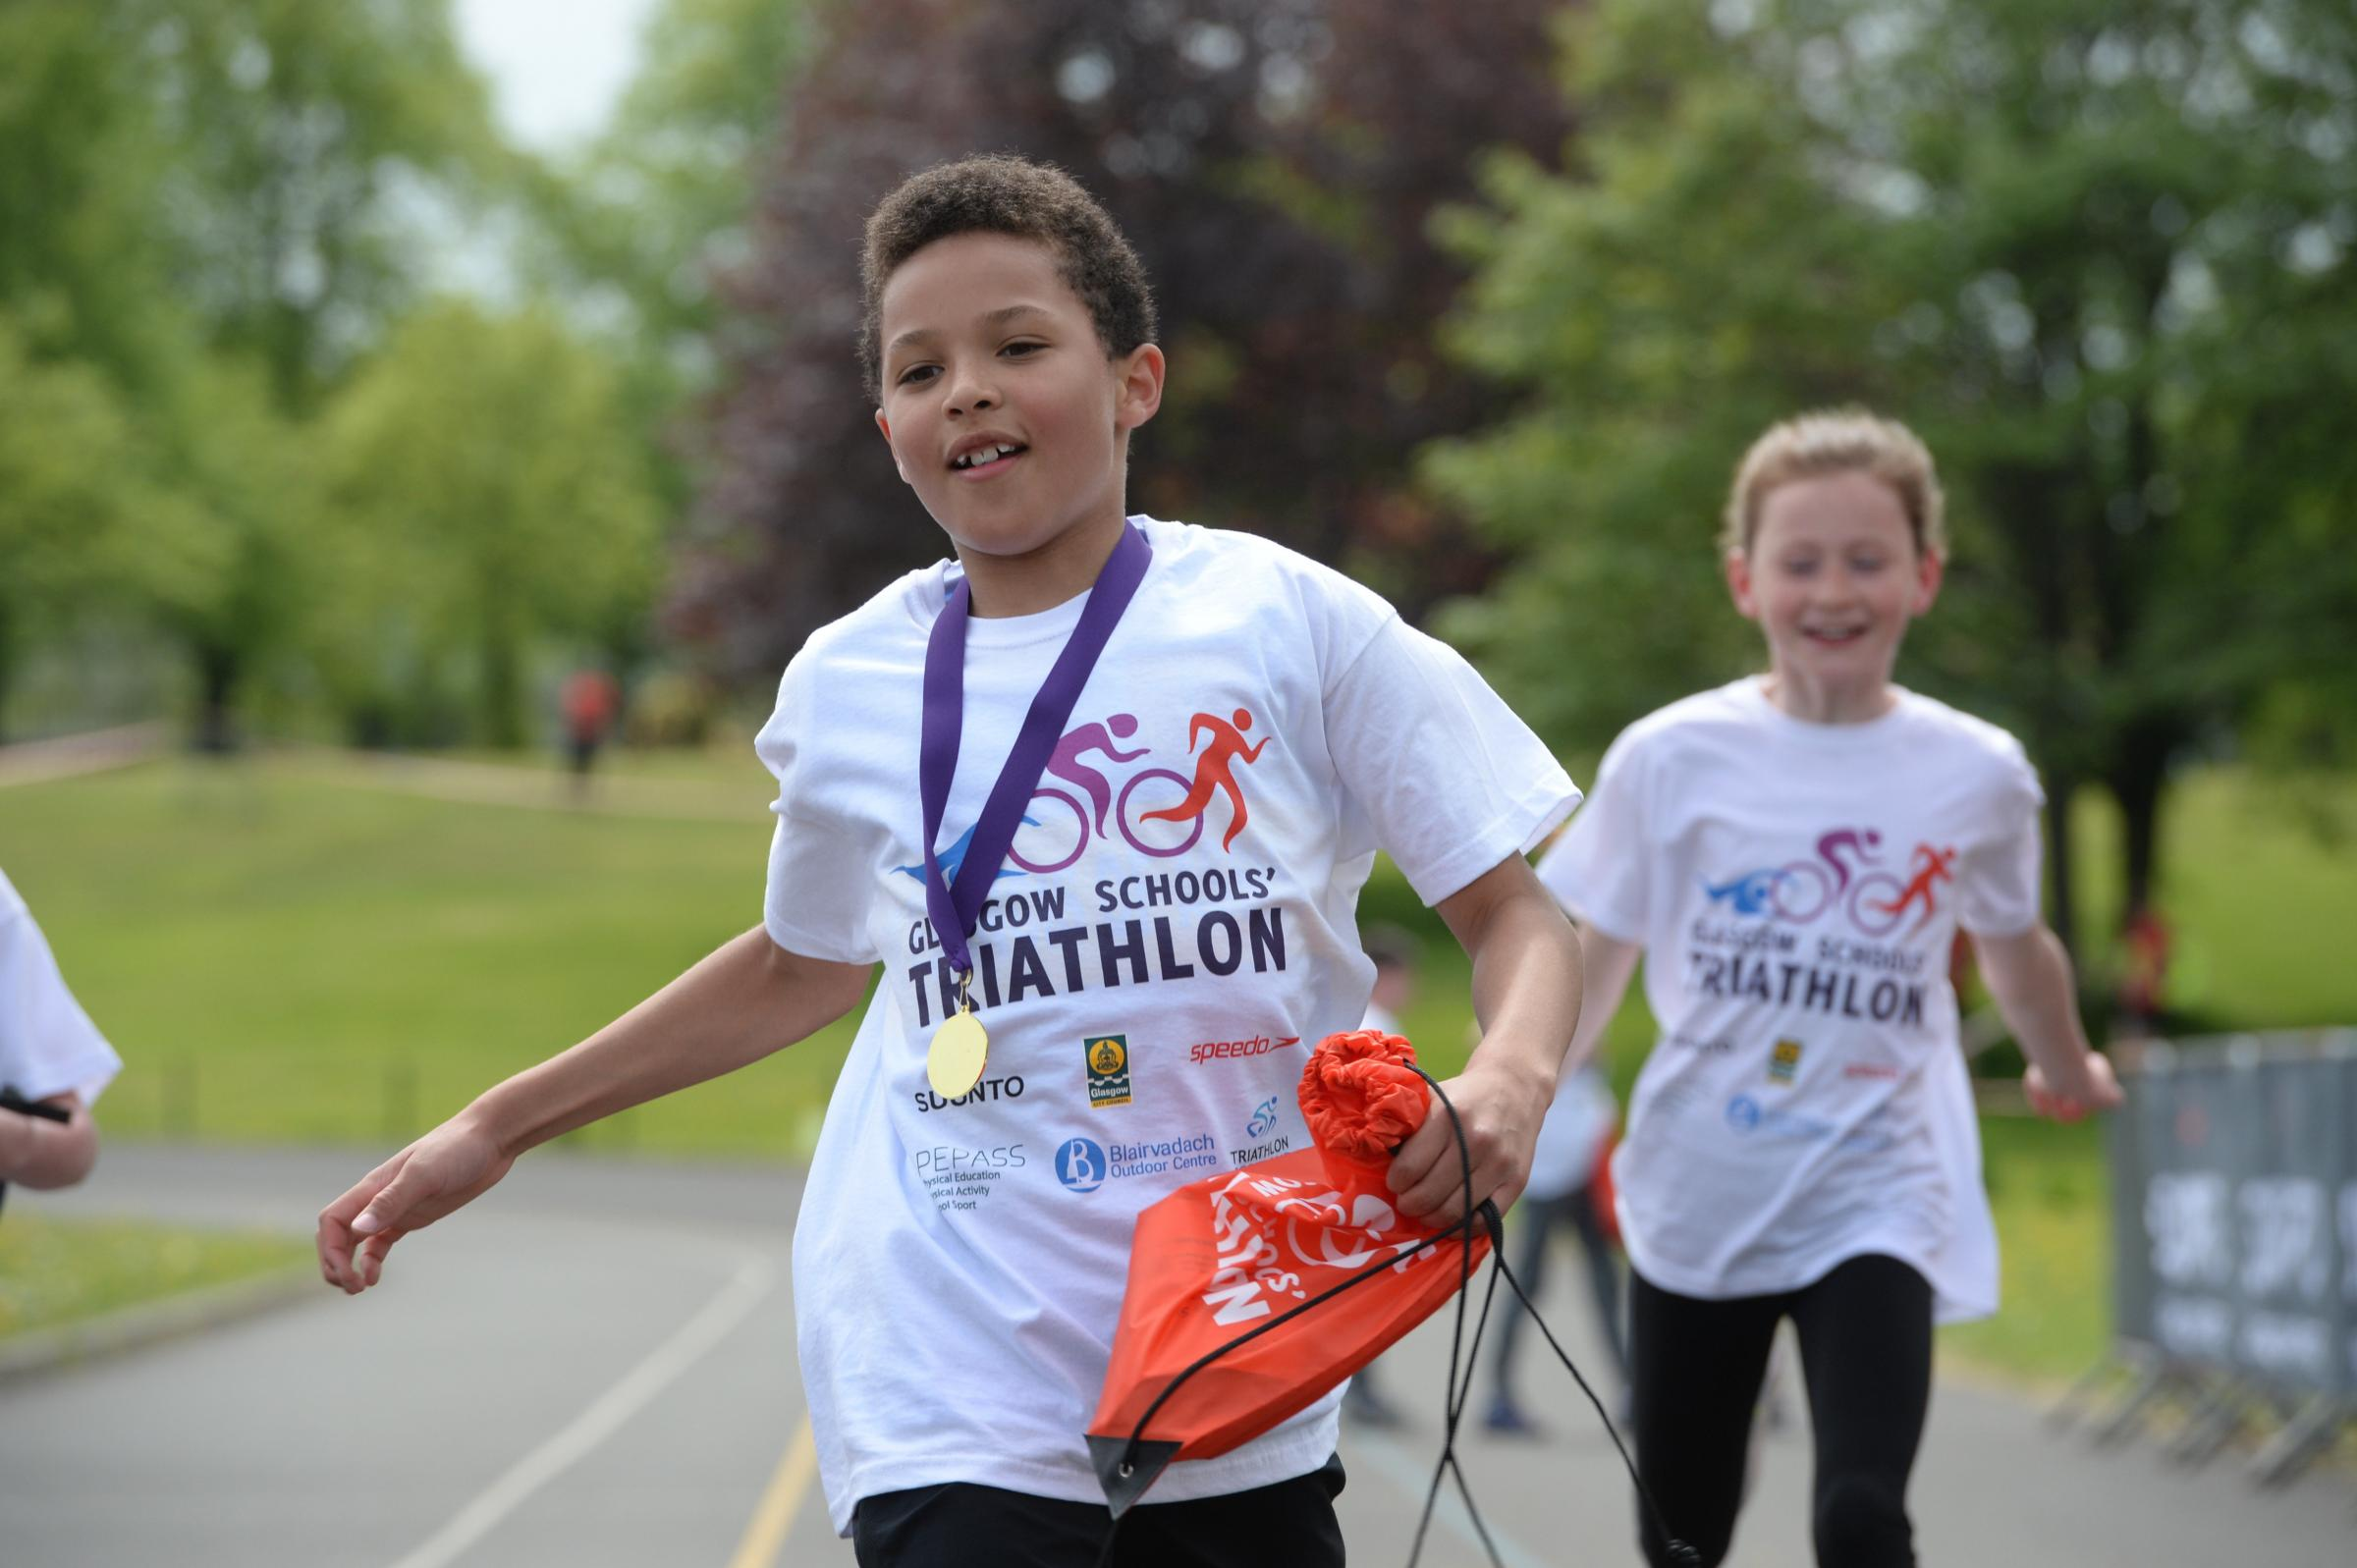 GLASGOW SCHOOLS TRIATHLON ..GLASGOW SCHOOLS TRIATHLON - 2nd Year ensuring that children and young people of the City have the opportunity to participate in events linked to sport in particular Glasgow 2018 European Championships...This event is organised